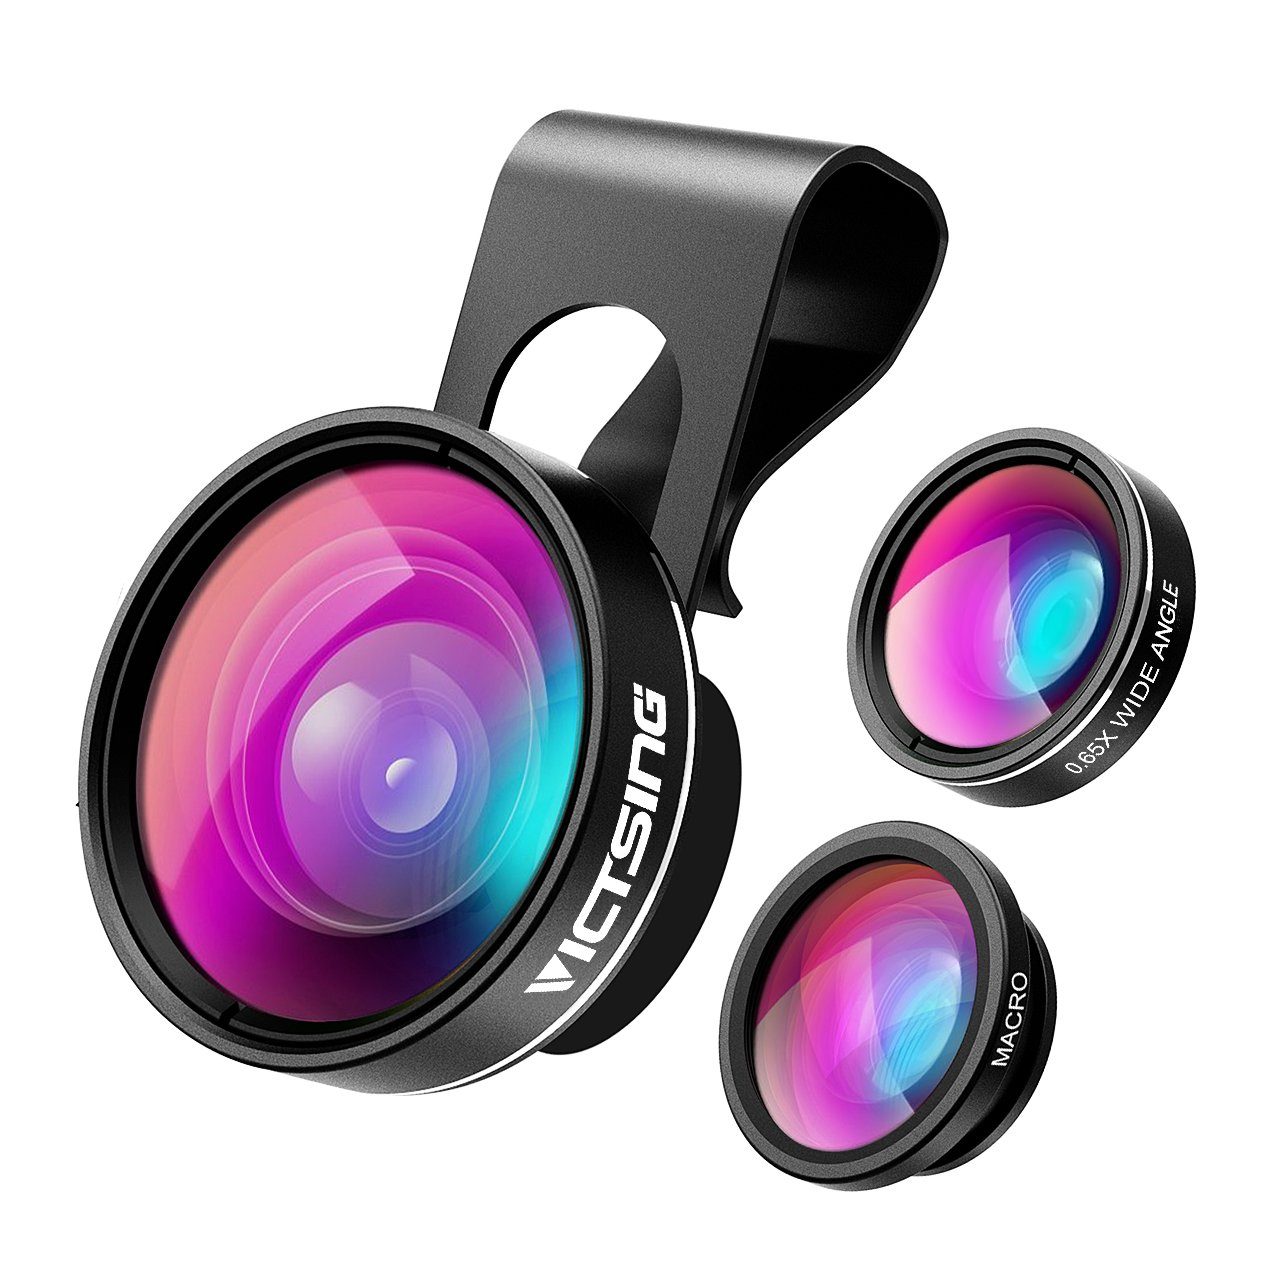 VicTsing 3 in 1 Fisheye Camera Lens, Macro Lens, 0.65X Wide Angle Lens, Clip on Cell Phone Lens Kits for iPhone 7, 6s, 6, 5s, Android and Most Phones by Vic Tsing